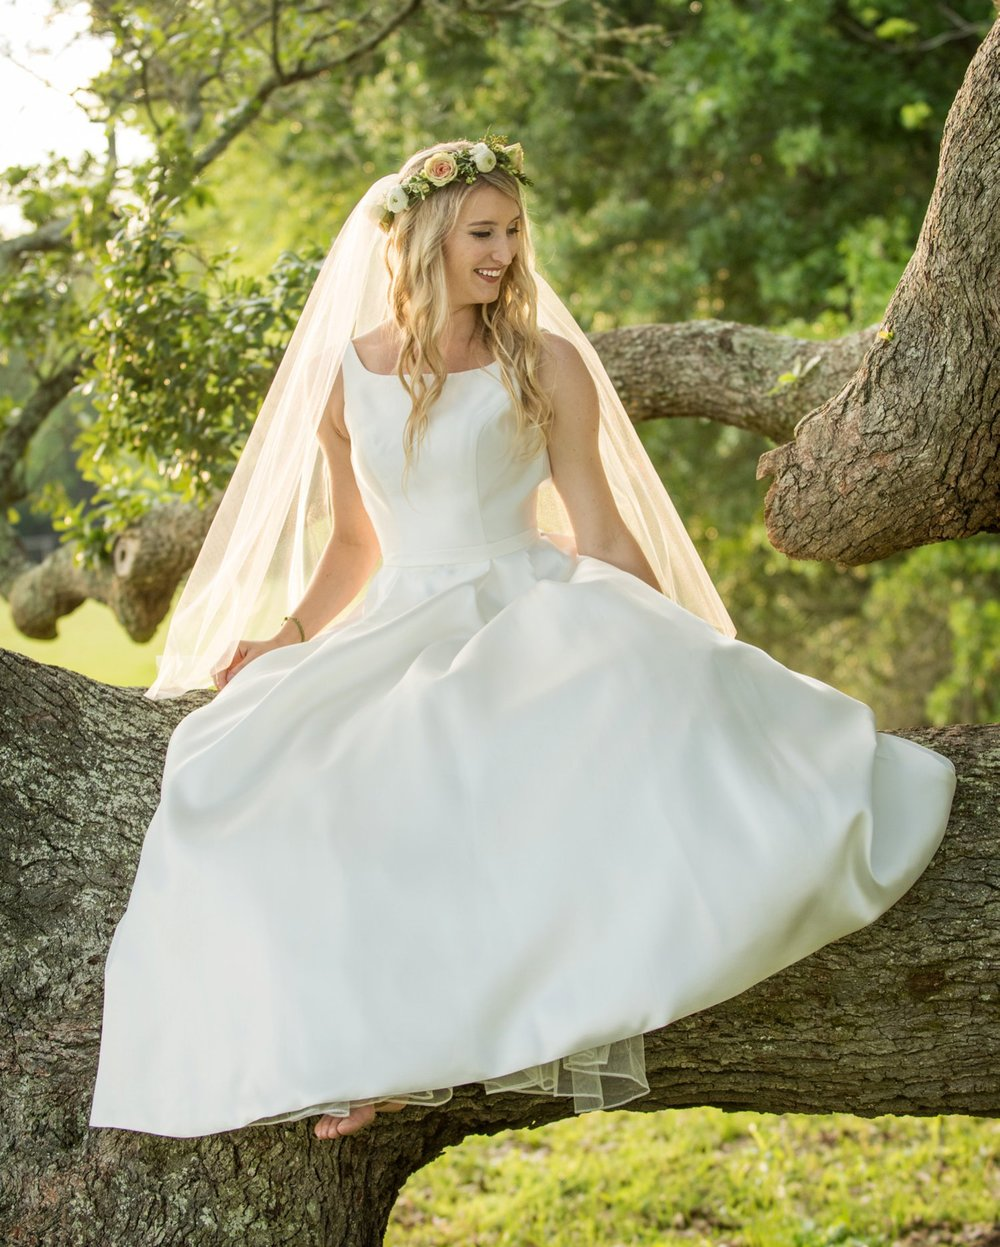 oak-hollow-farm-fairhope-wedding-candice-brown-photography